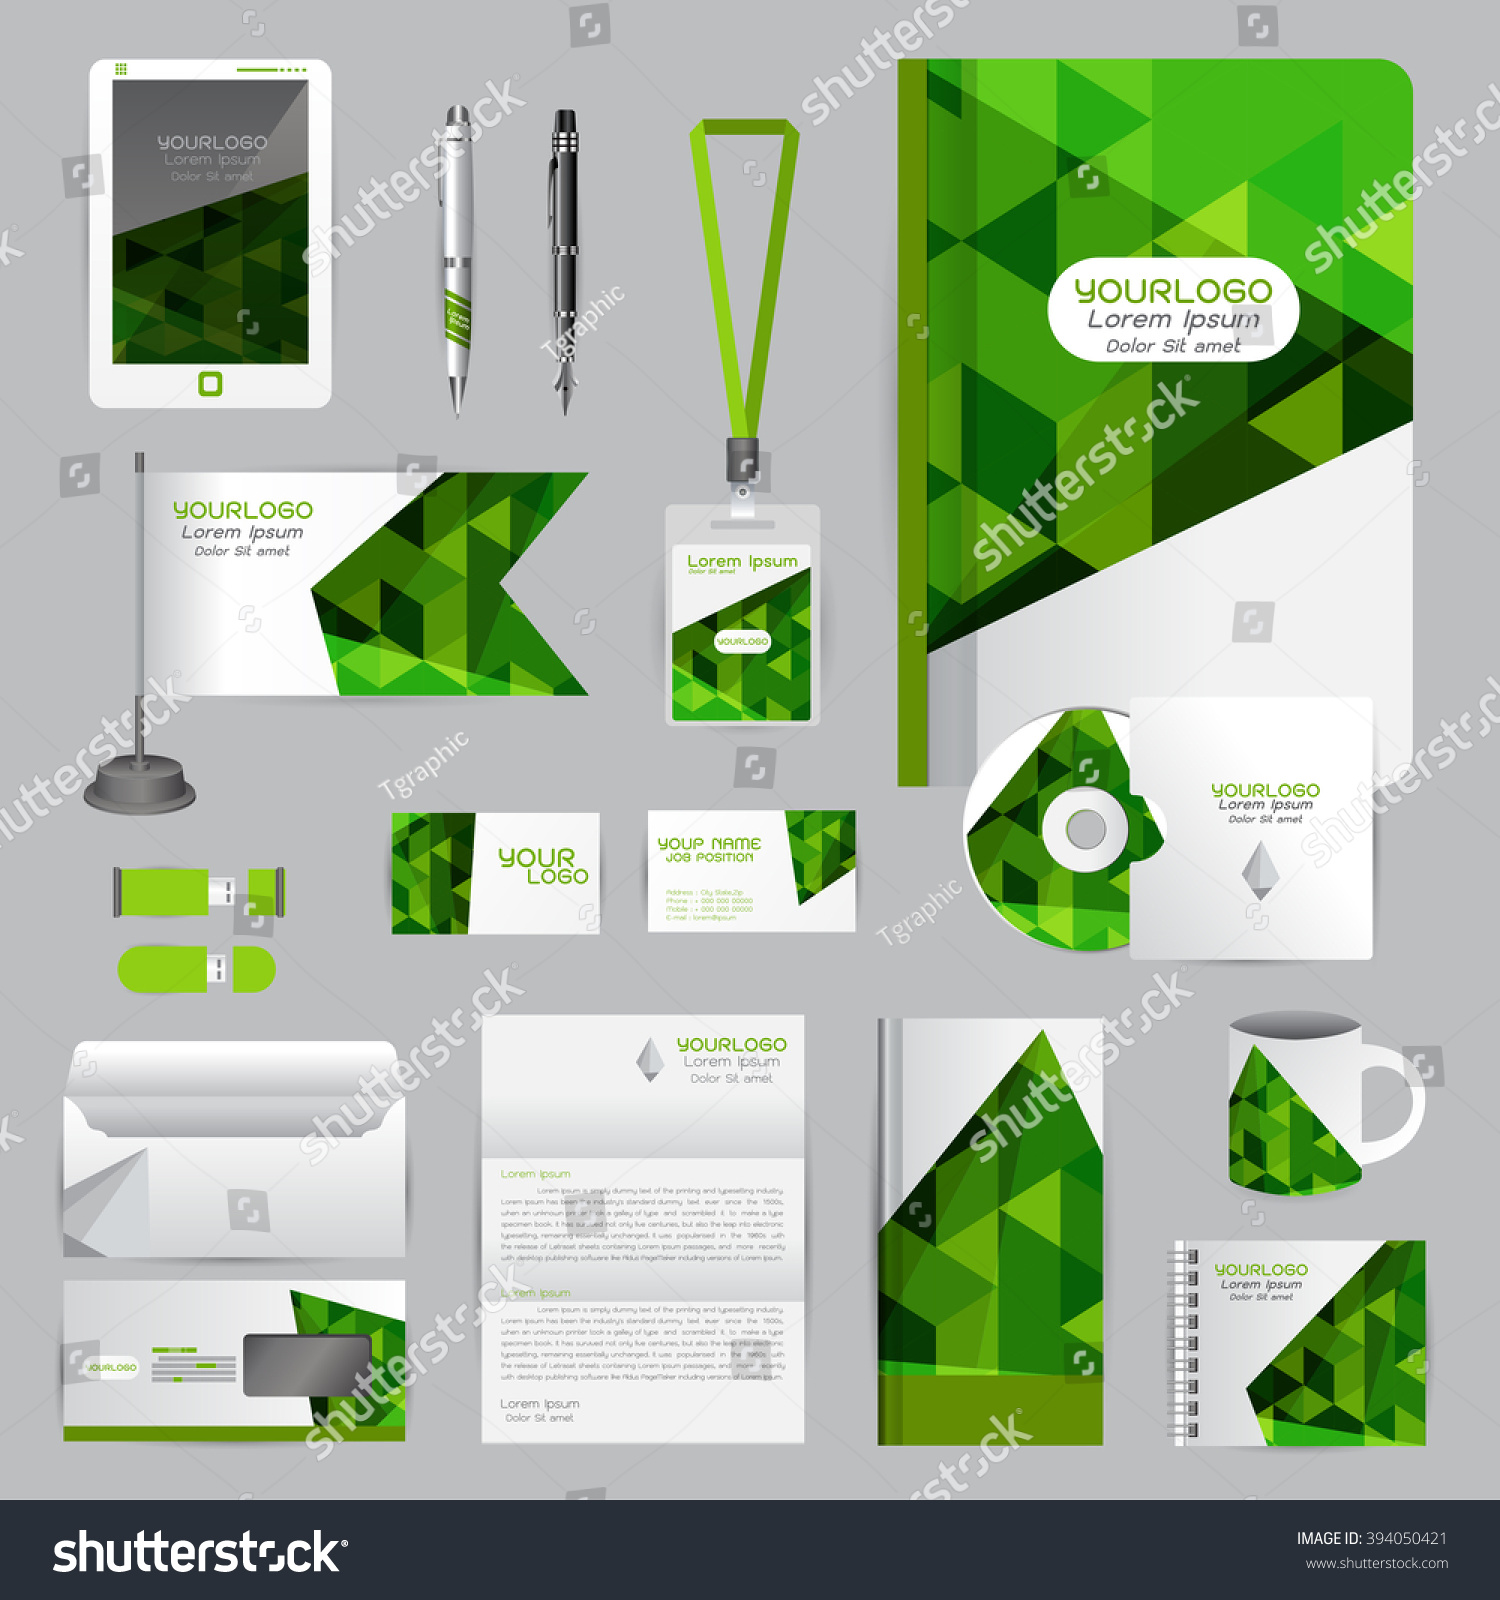 White Identity Template Origami Elements Vector Stock Vector ...